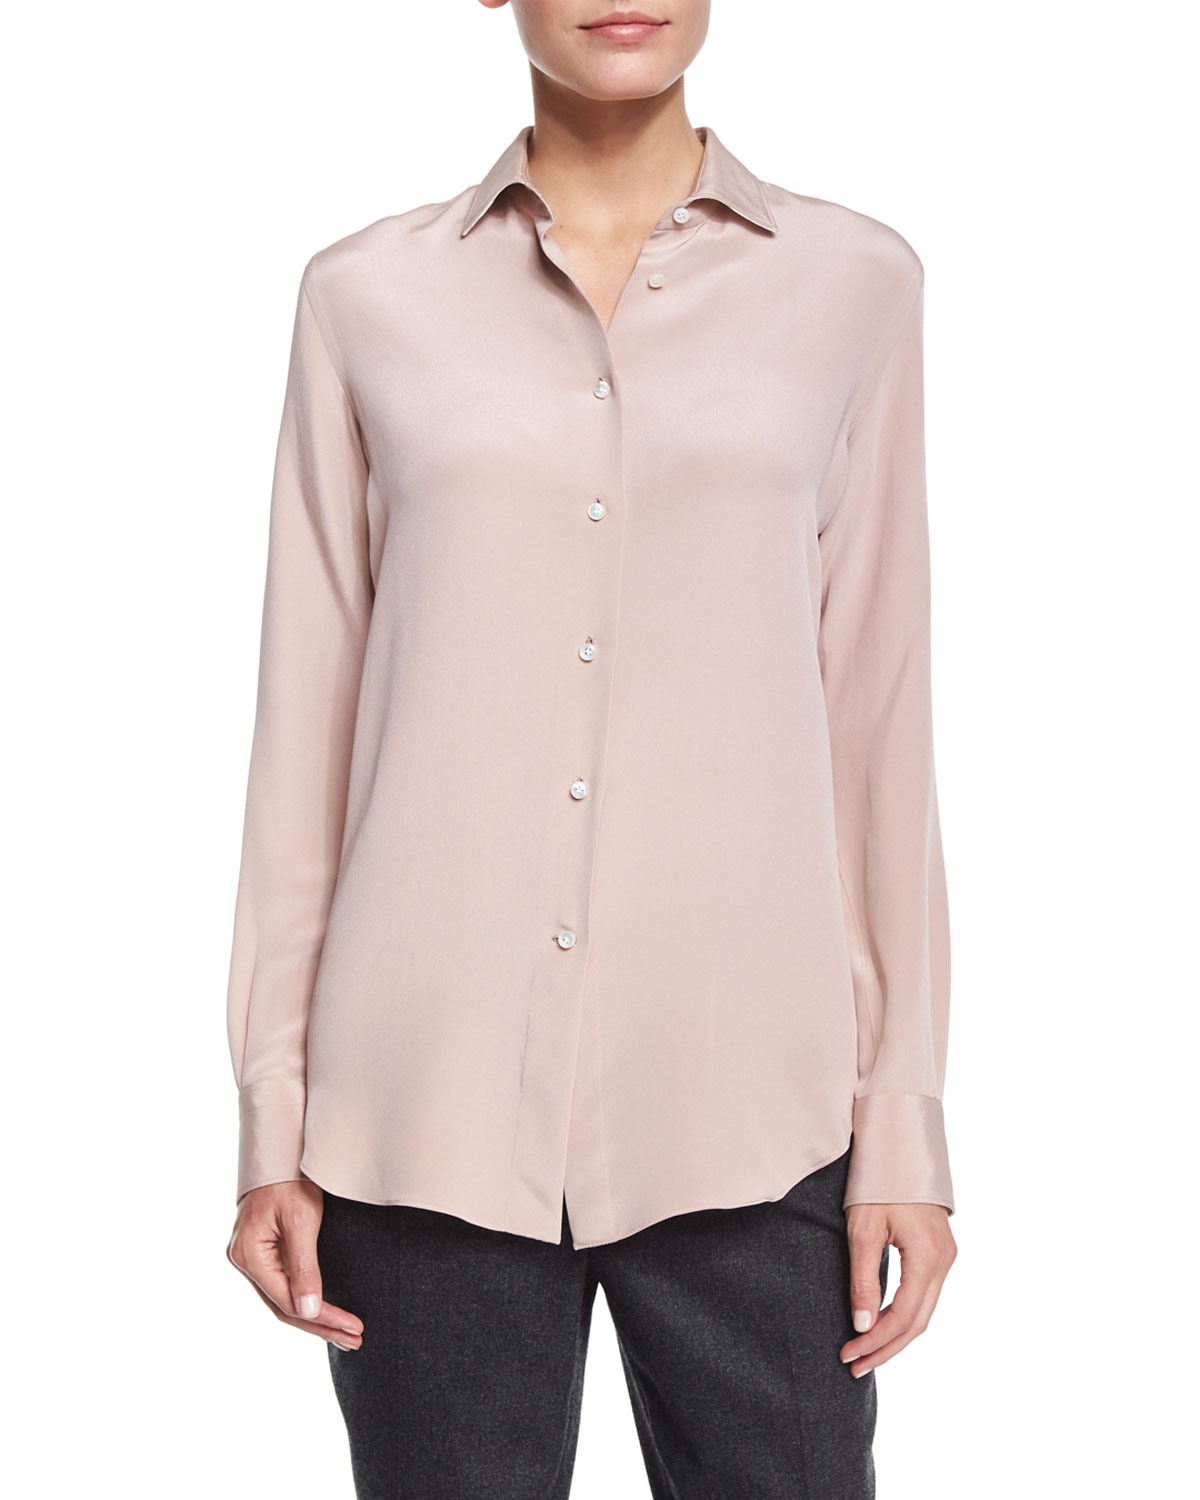 Classic Charmeuse Button Blouse, Spanish Pink